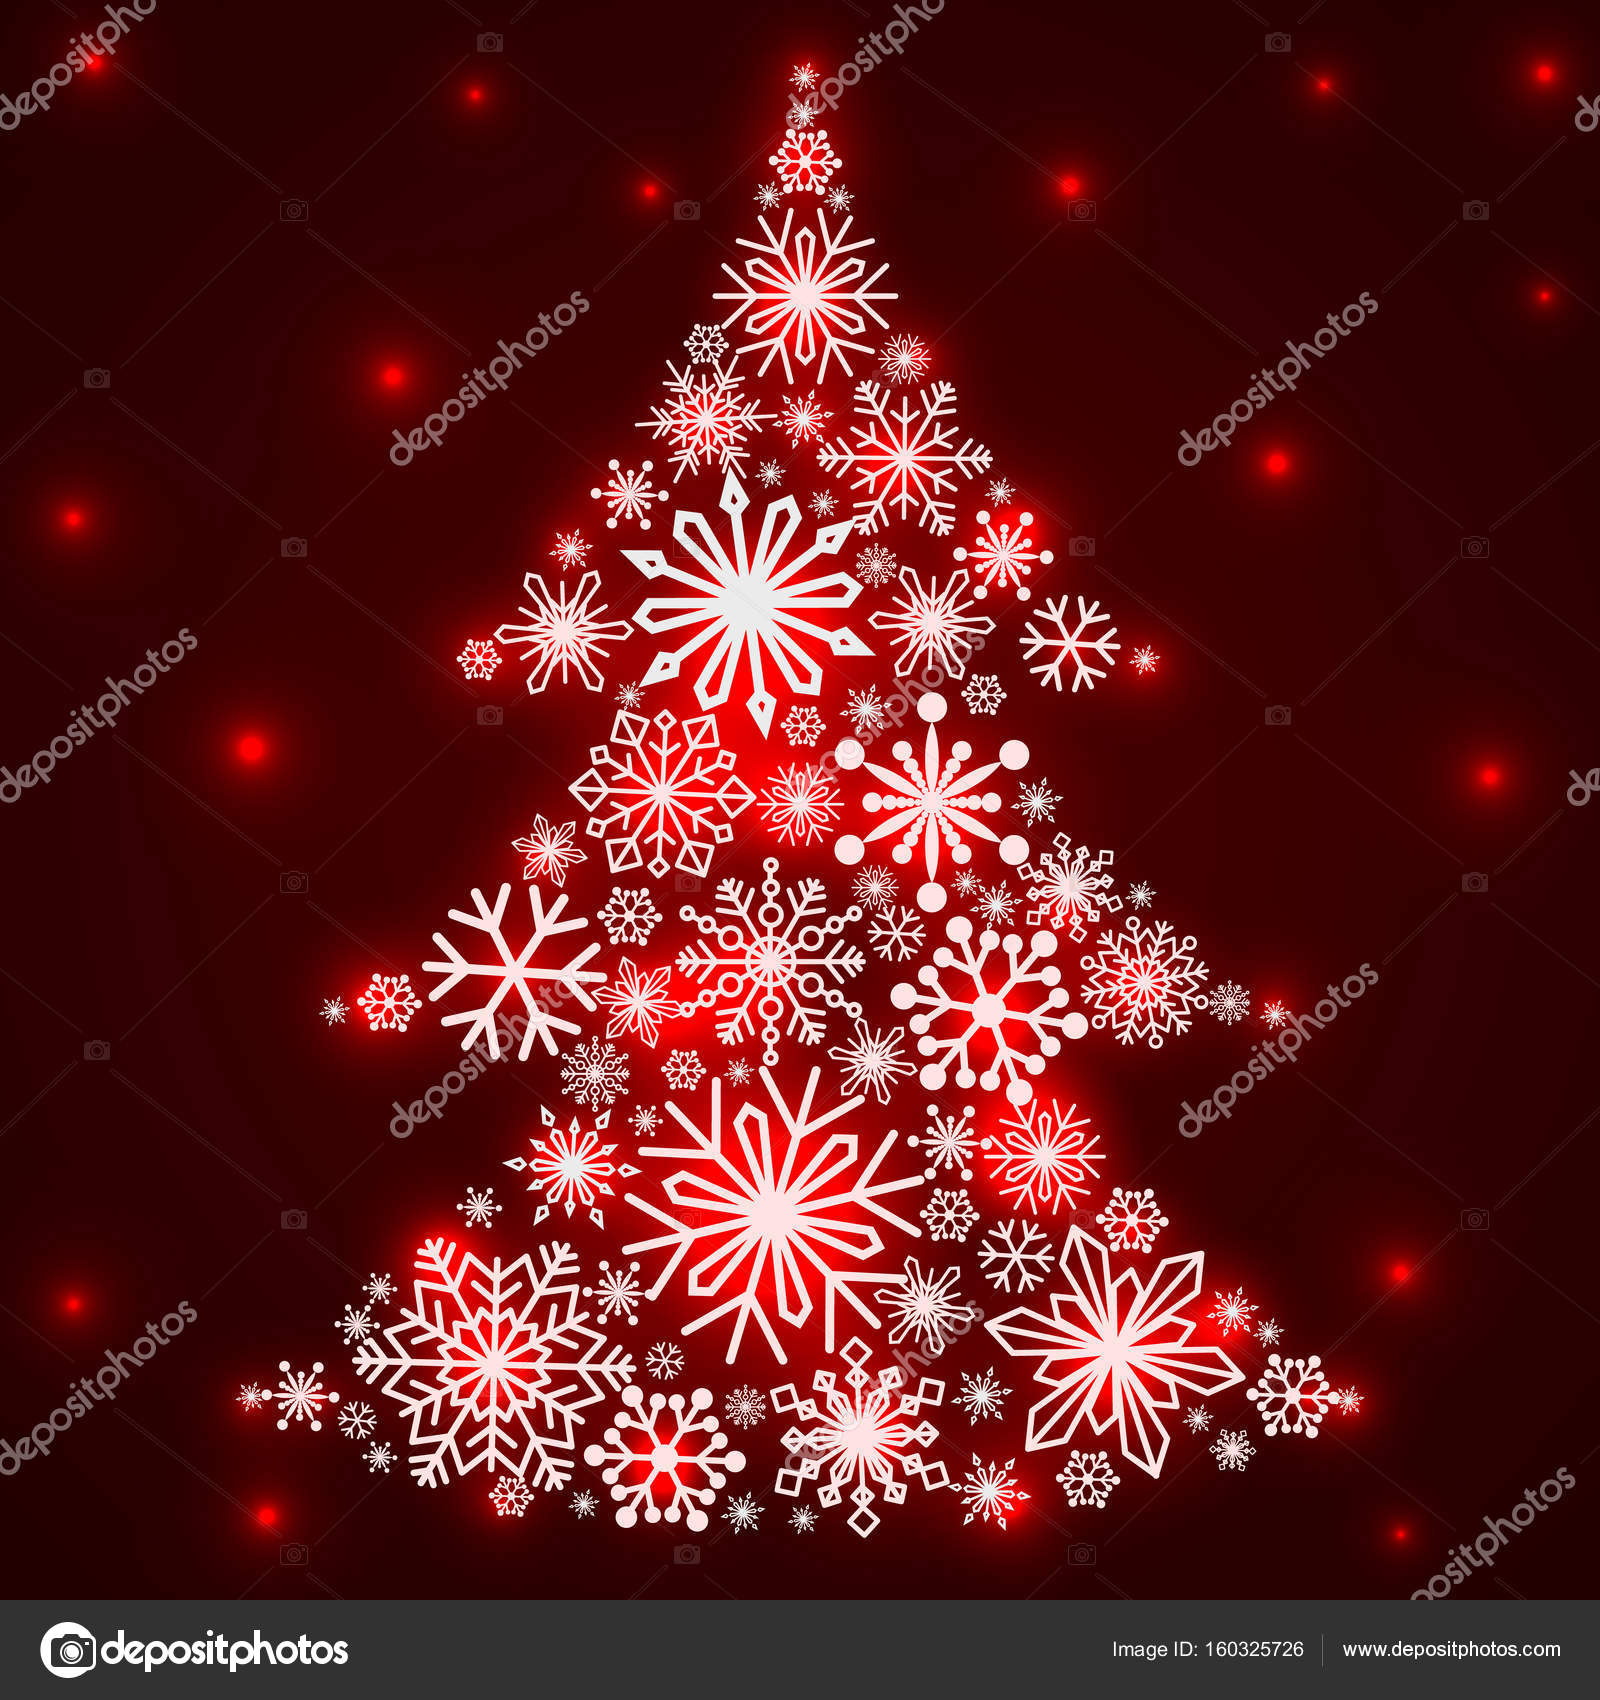 snowflakes in the form of a christmas tree winter themes snowflakes of different sizes and shapes new year and christmas vector illustration